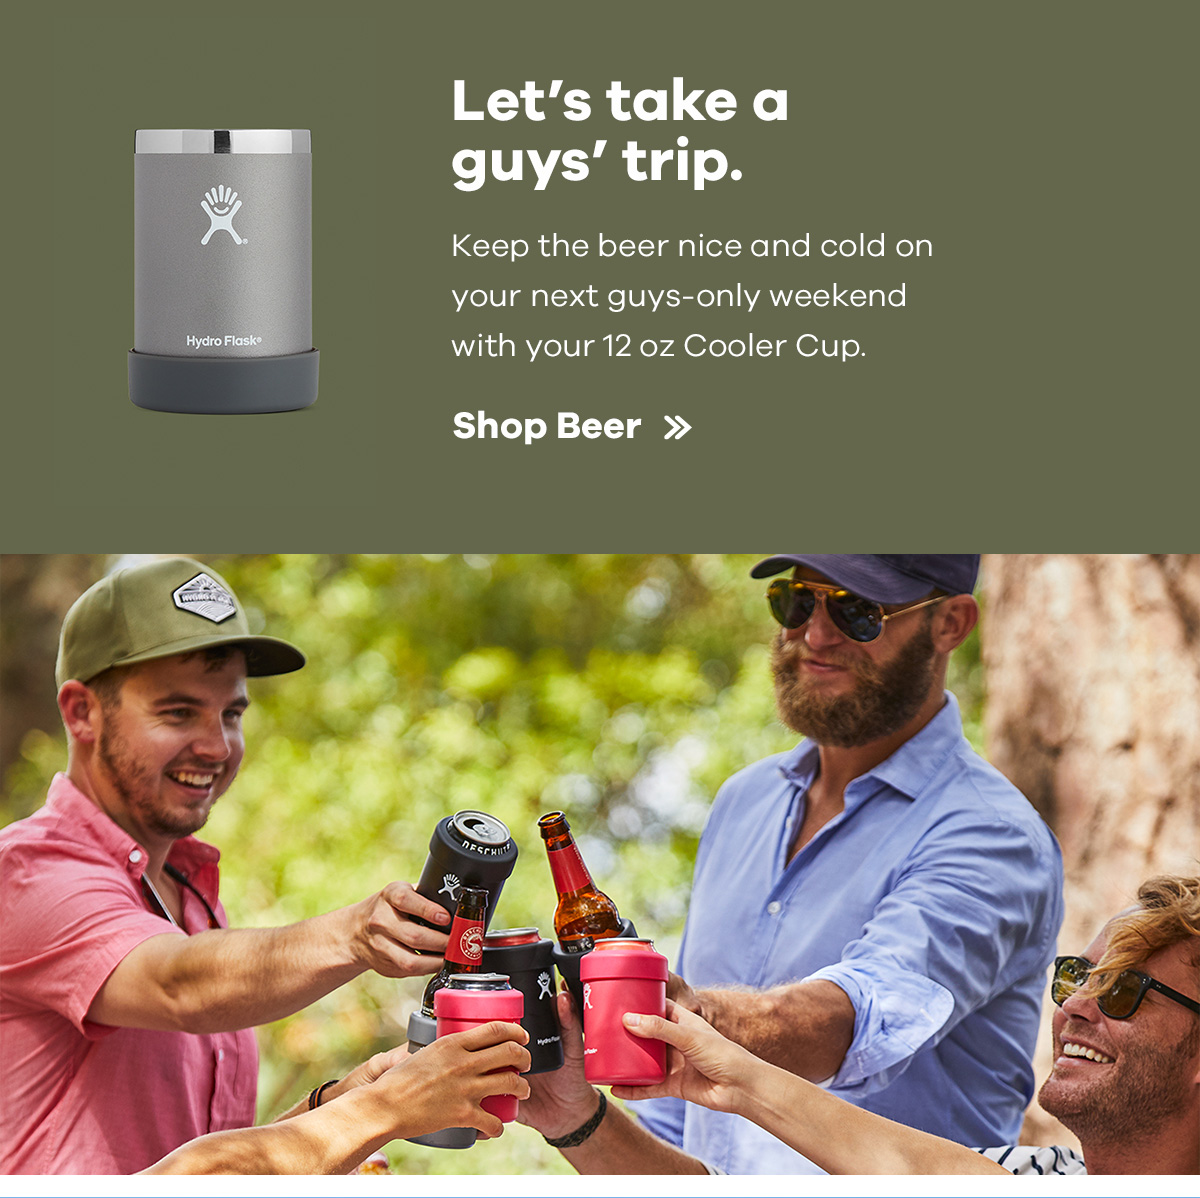 Let's take a guys' trip. Keep the beer nice and cold on your next guys-only weekend with your 12 oz Cooler Cup. | Shop Beer >>